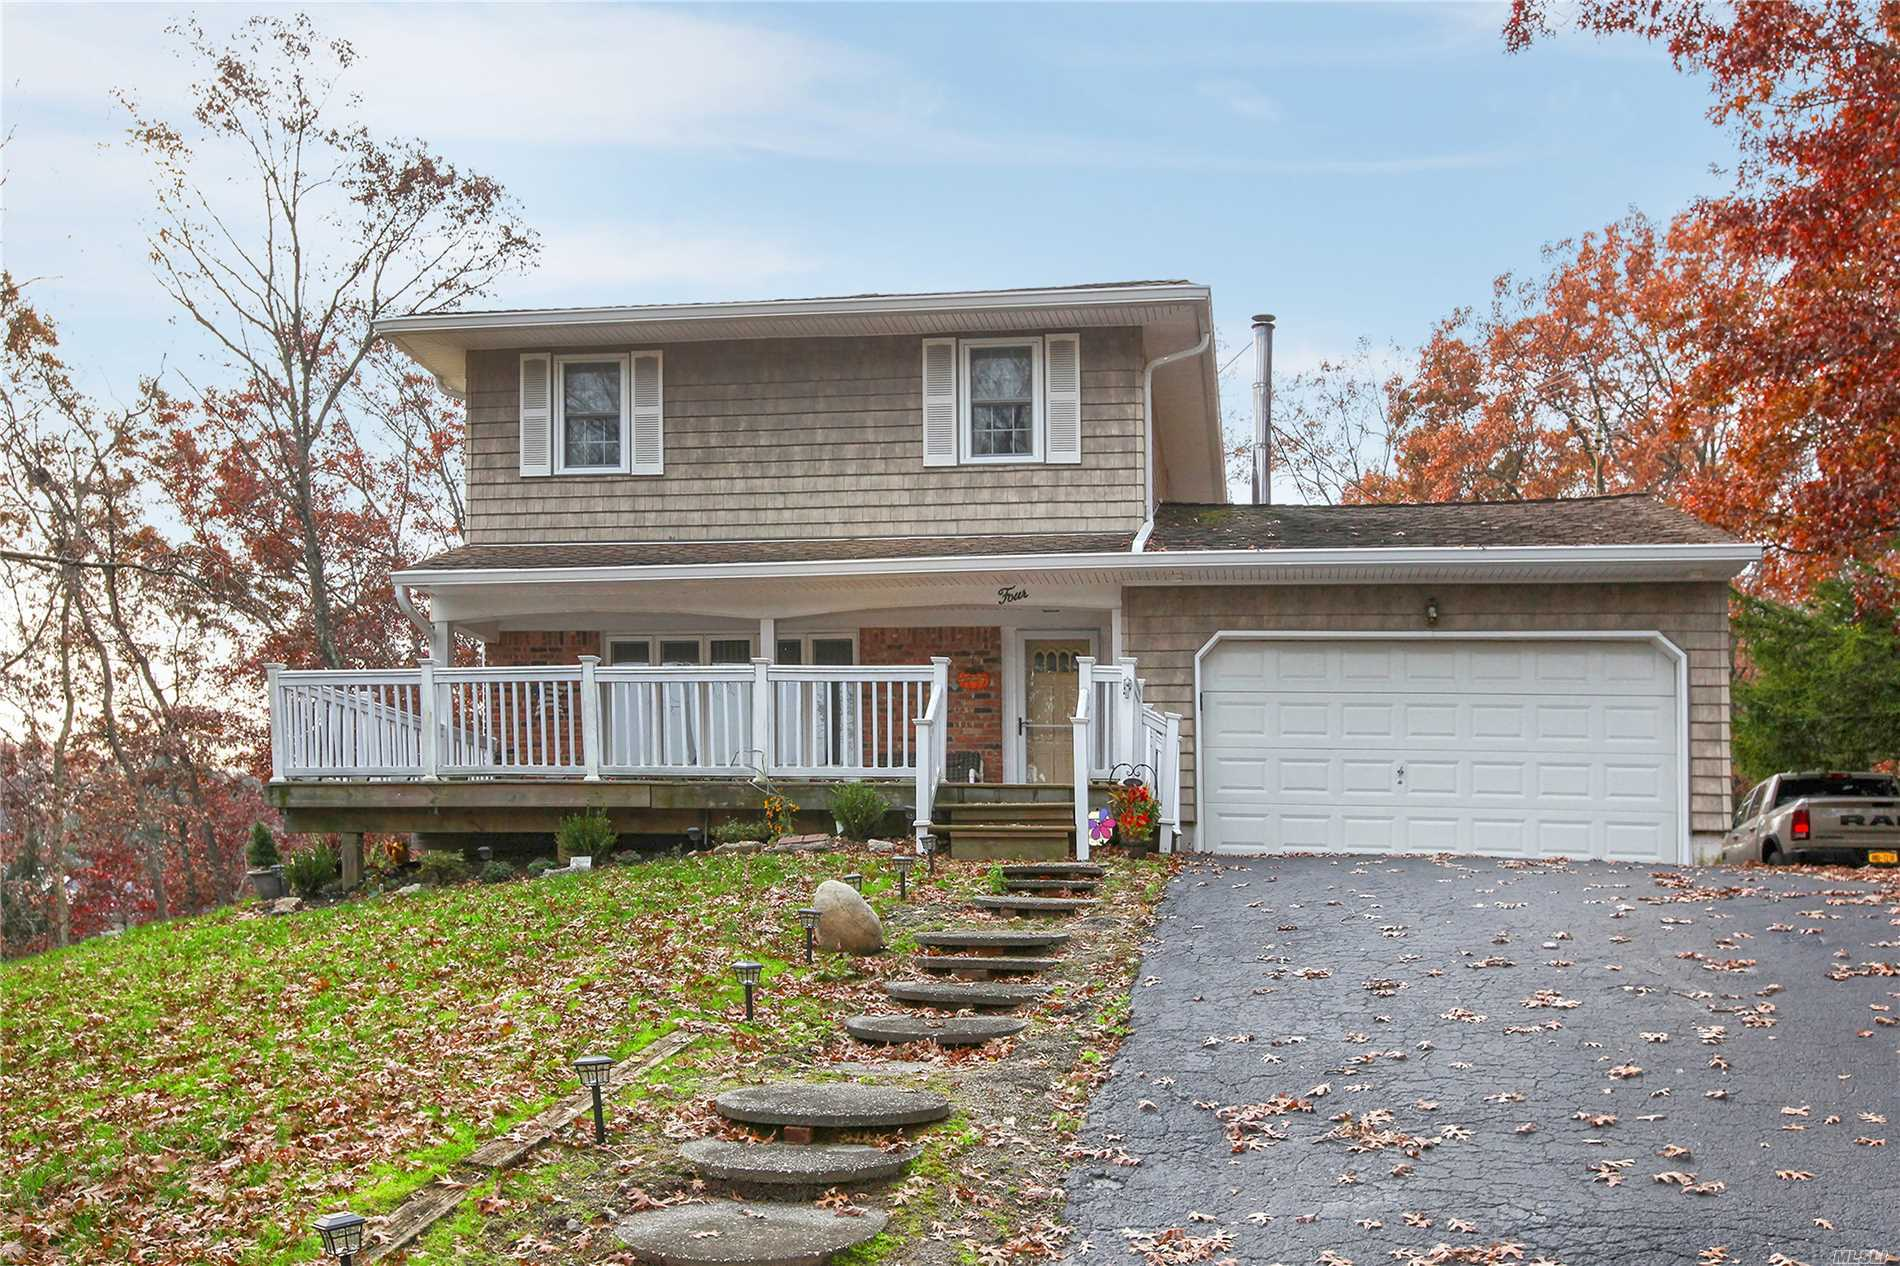 What A Beautiful Opportunity To Own A Well Maintained Home In A Highly Desirable Commack Community. This 4 Bedroom 2.5 Bath Colonial Offers A Newer Tiled Foyer And Kitchen Area, New Kitchen With Shaker Cabinets, Granite Tops, Tiled Backslash & High End Ss/Appliances. Large Sunken Den With A Stone Faced Fireplace, Cac & Solar Panels. Enjoy Your Summer Days In A Screened In Patio Or On Your Back Deck Over Looking A In The Ground Pool. All This And More All Situated On Over A Half Acre Of Property.